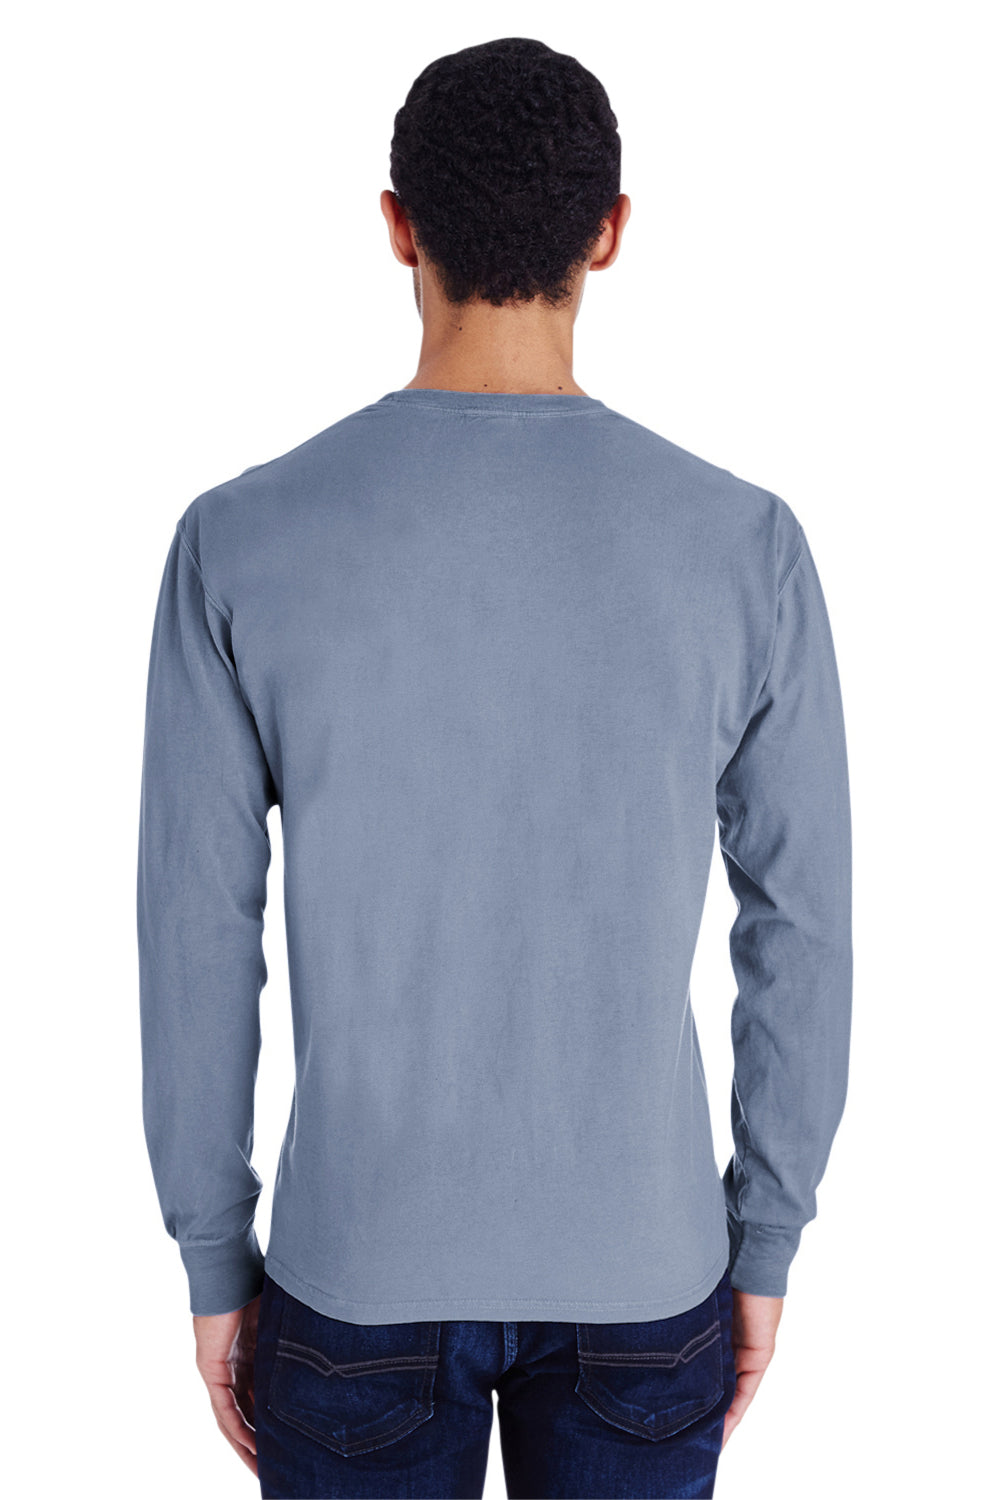 ComfortWash by Hanes GDH250 Long Sleeve Crewneck T-Shirt w/ Pocket Saltwater Blue Back